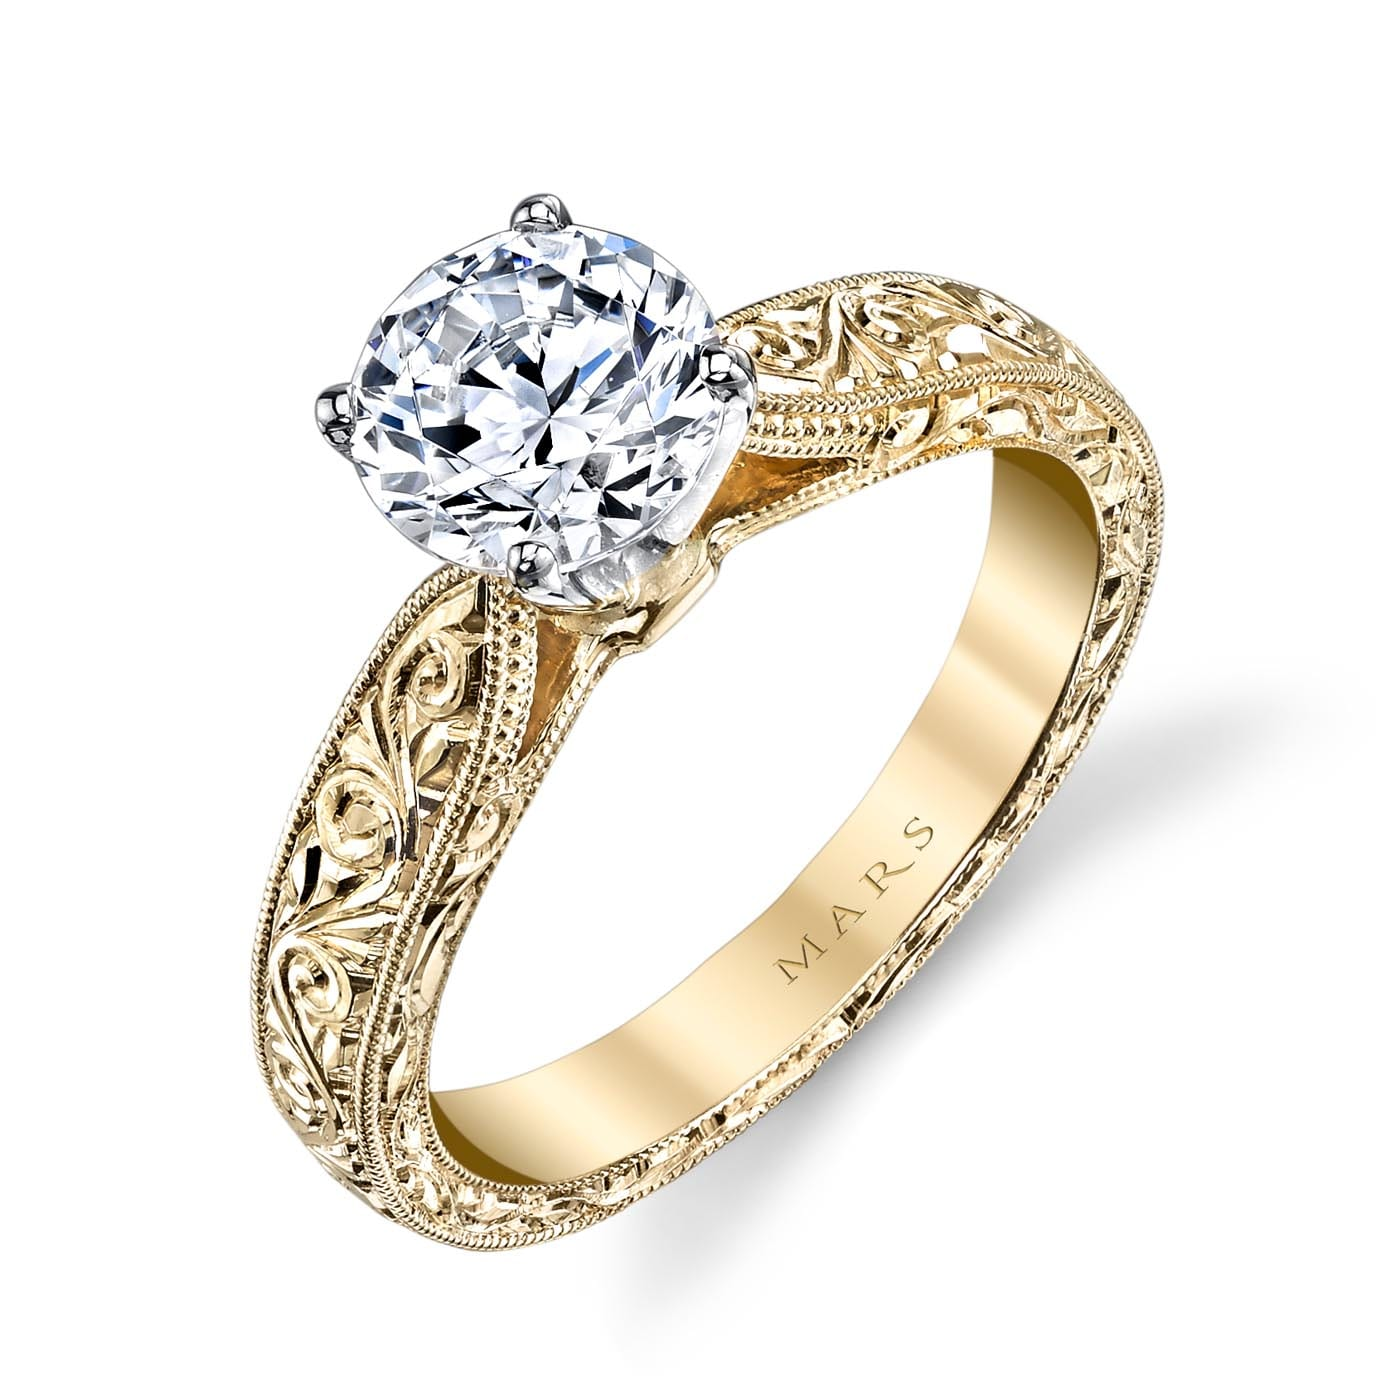 Solitaire Engagement RingStyle #: MARS 13256HE